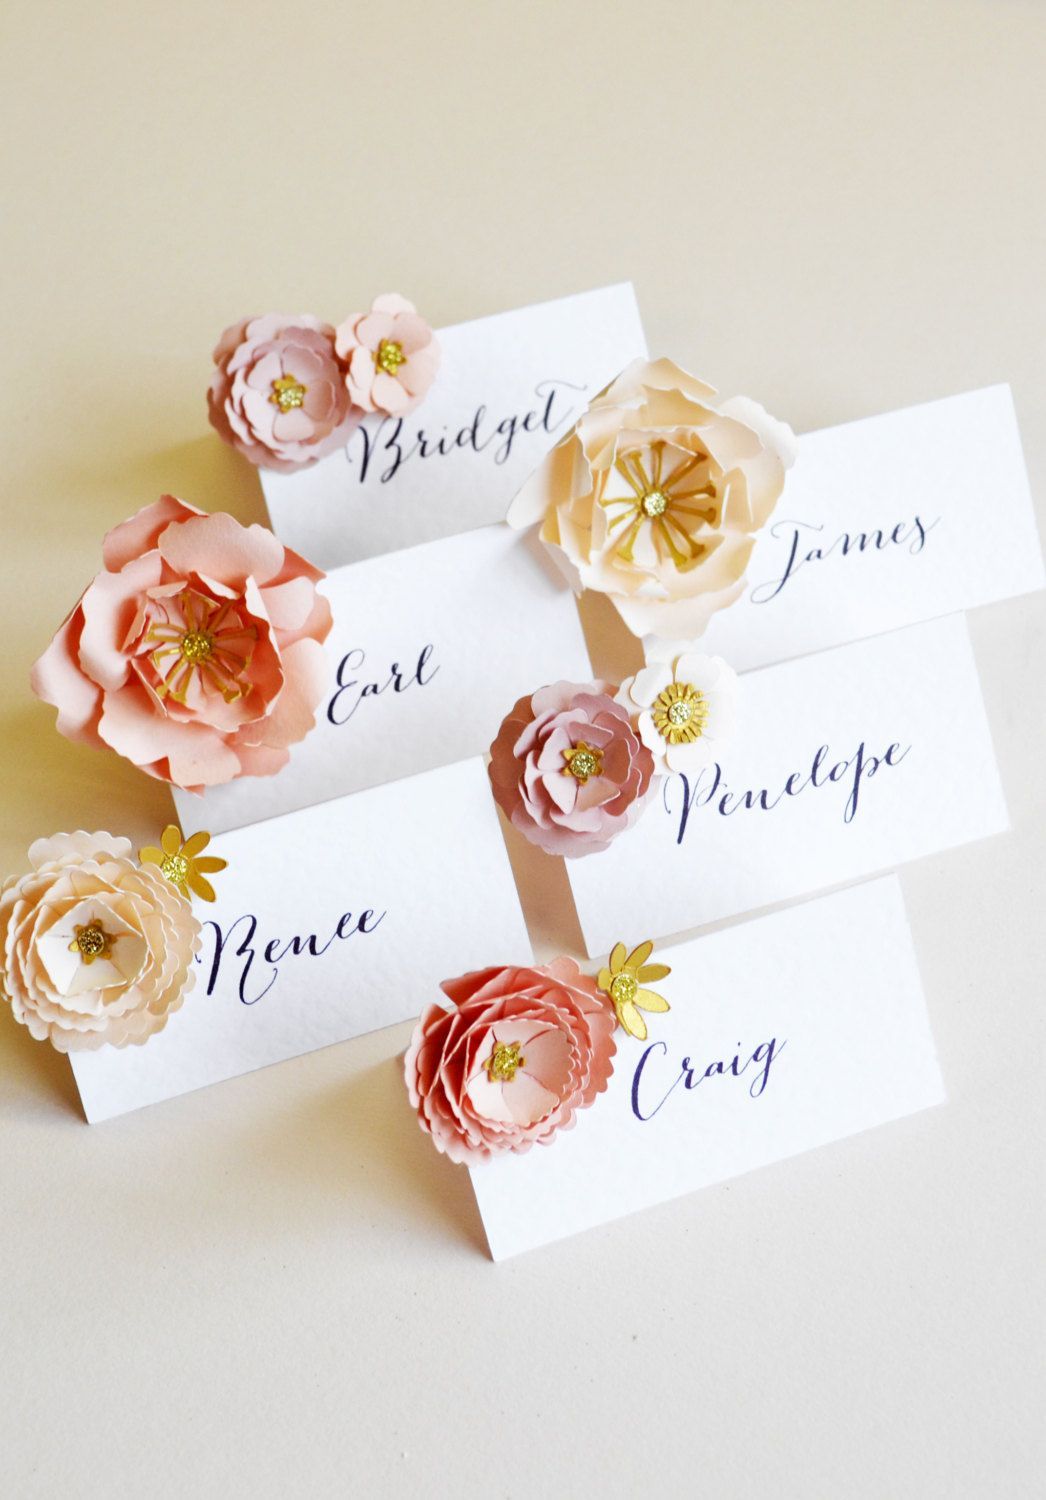 printable wedding place cards vintage%0A These luxurious paper flower name cards add a beautiful romantic touch to  your table decor